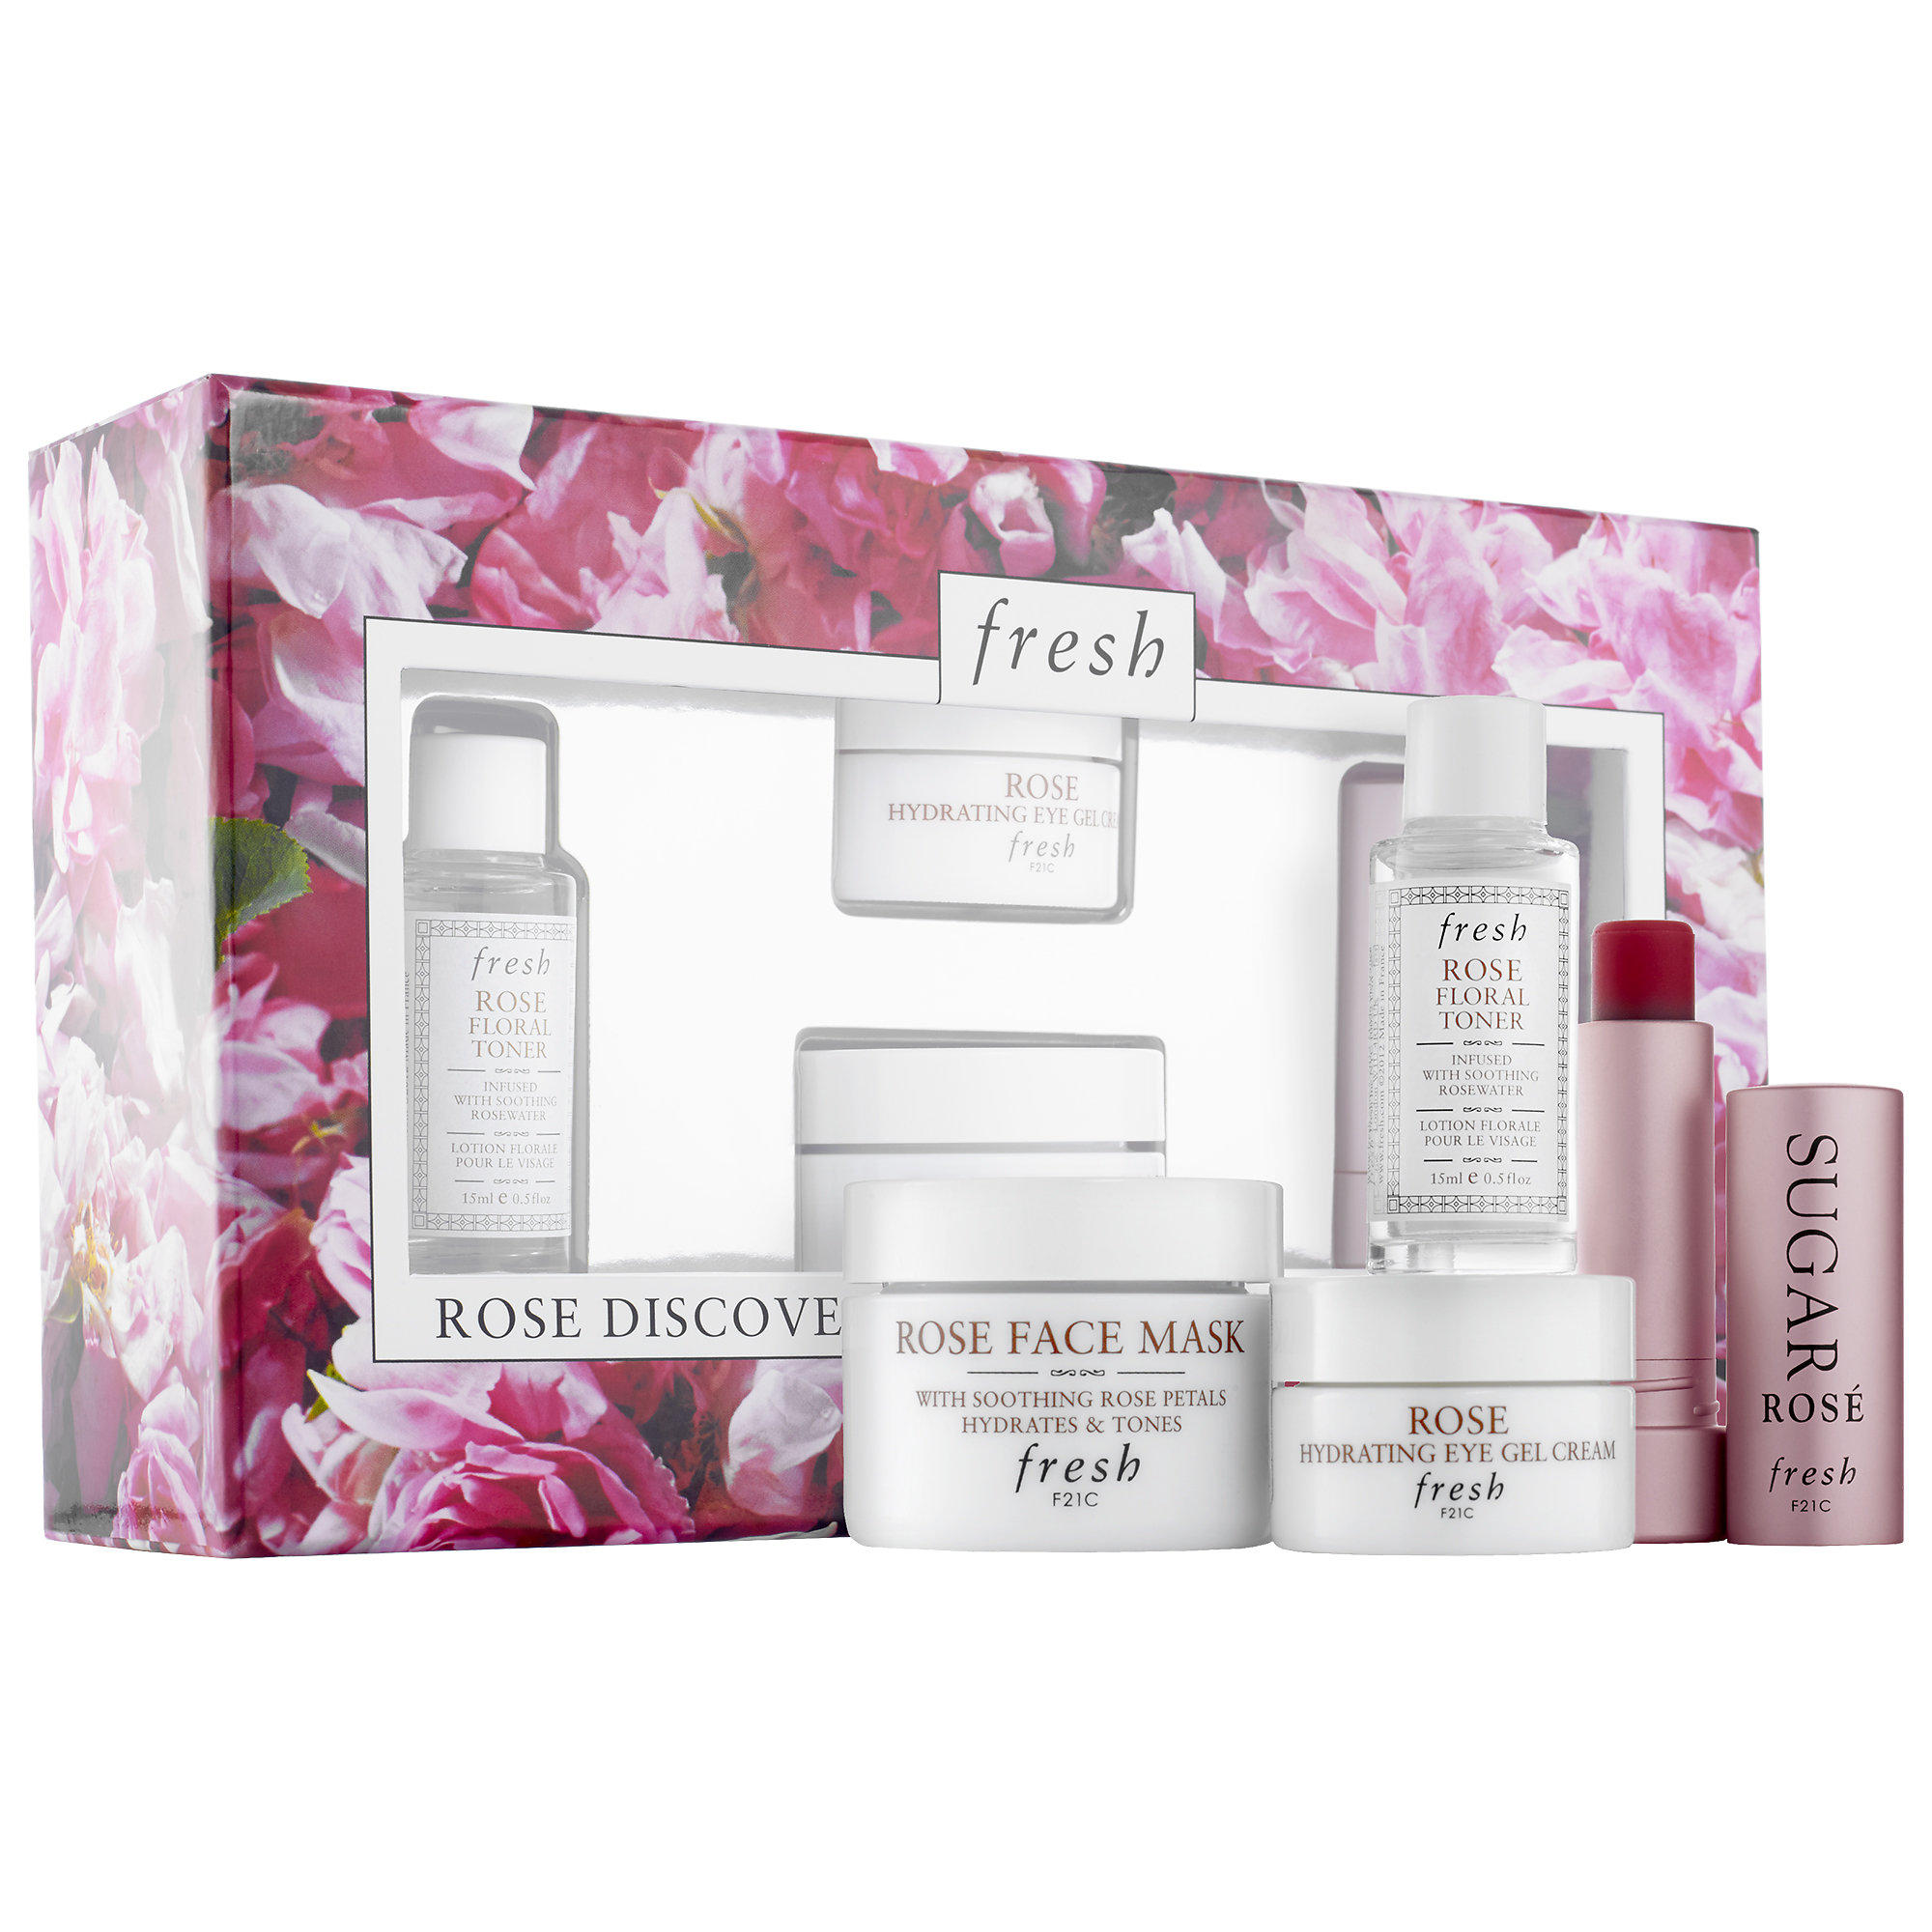 New ReleaseFresh launched New Rose Discovery Kit